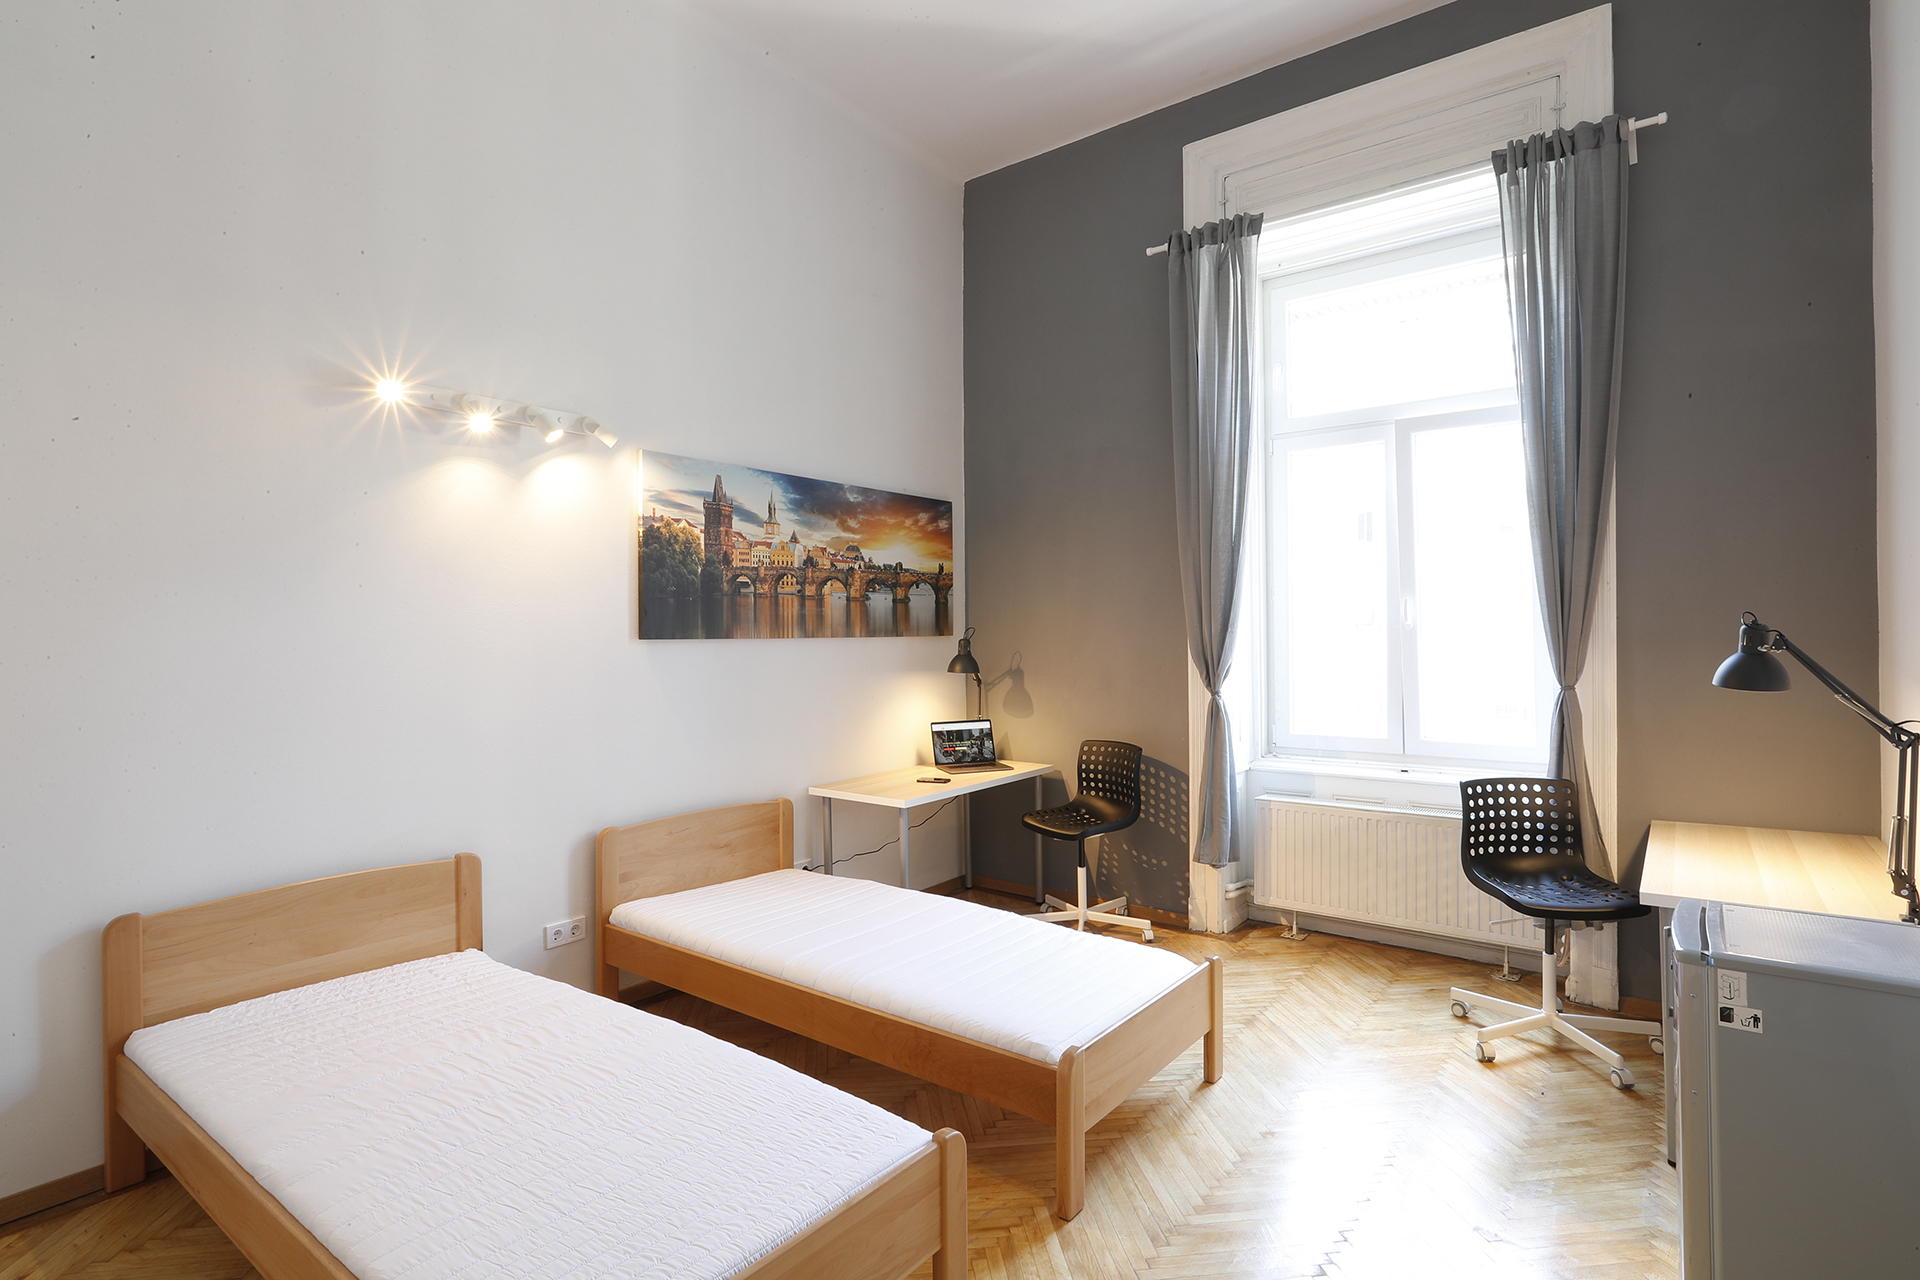 Student room for rent in Budapest, Student accommodation Budapest, Accommodation for students in Budapest, Student housing, Student apartman in Budapest